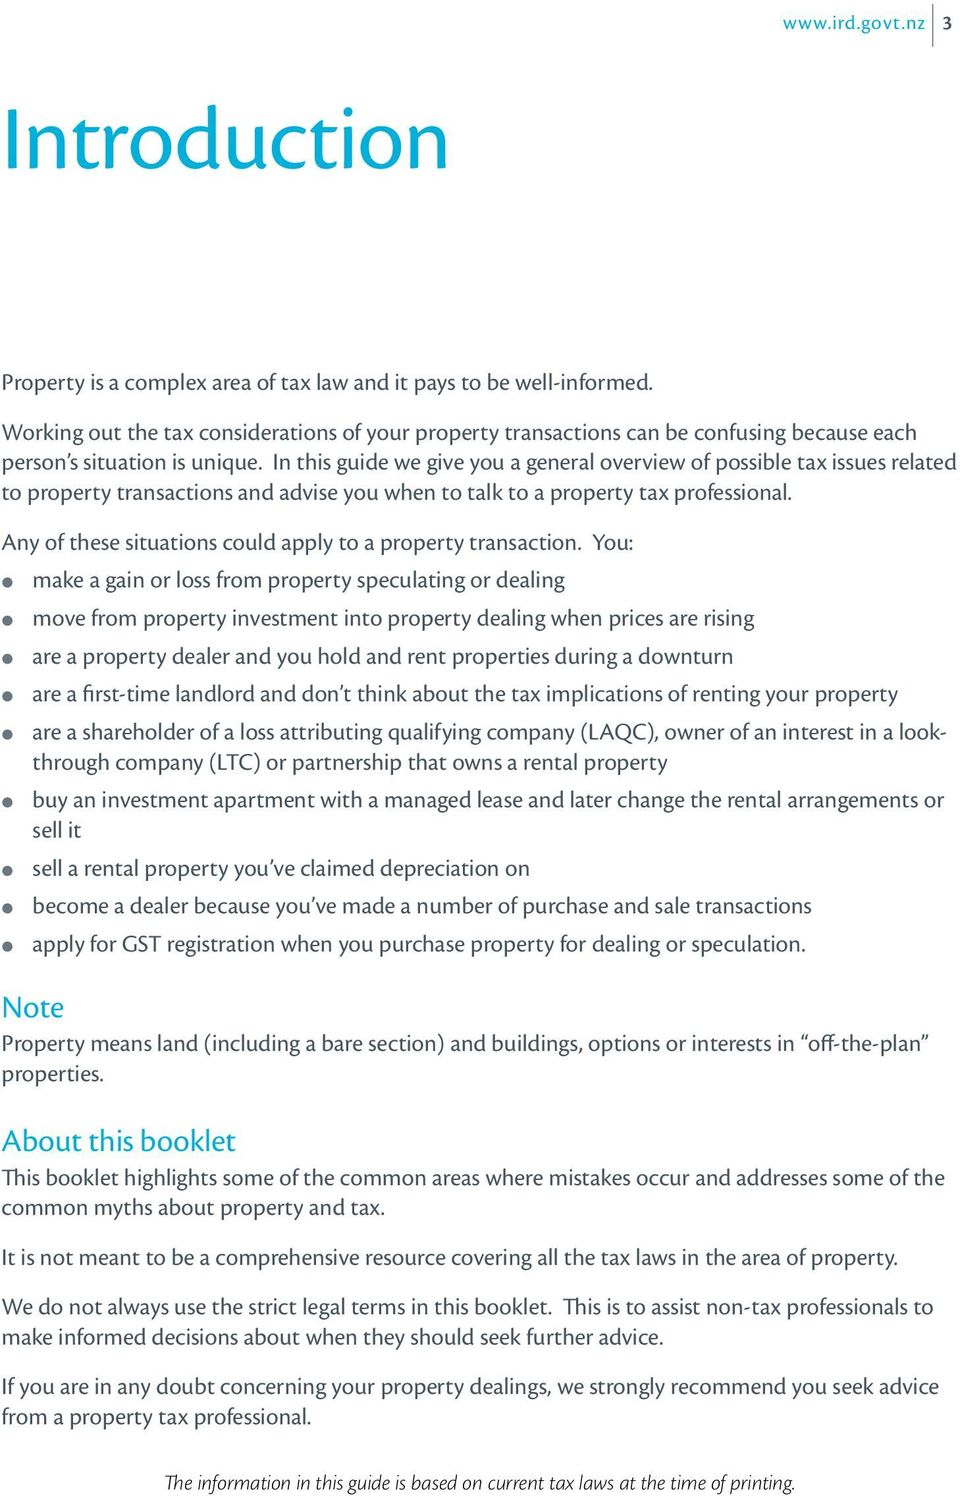 In this guide we give you a general overview of possible tax issues related to property transactions and advise you when to talk to a property tax professional.